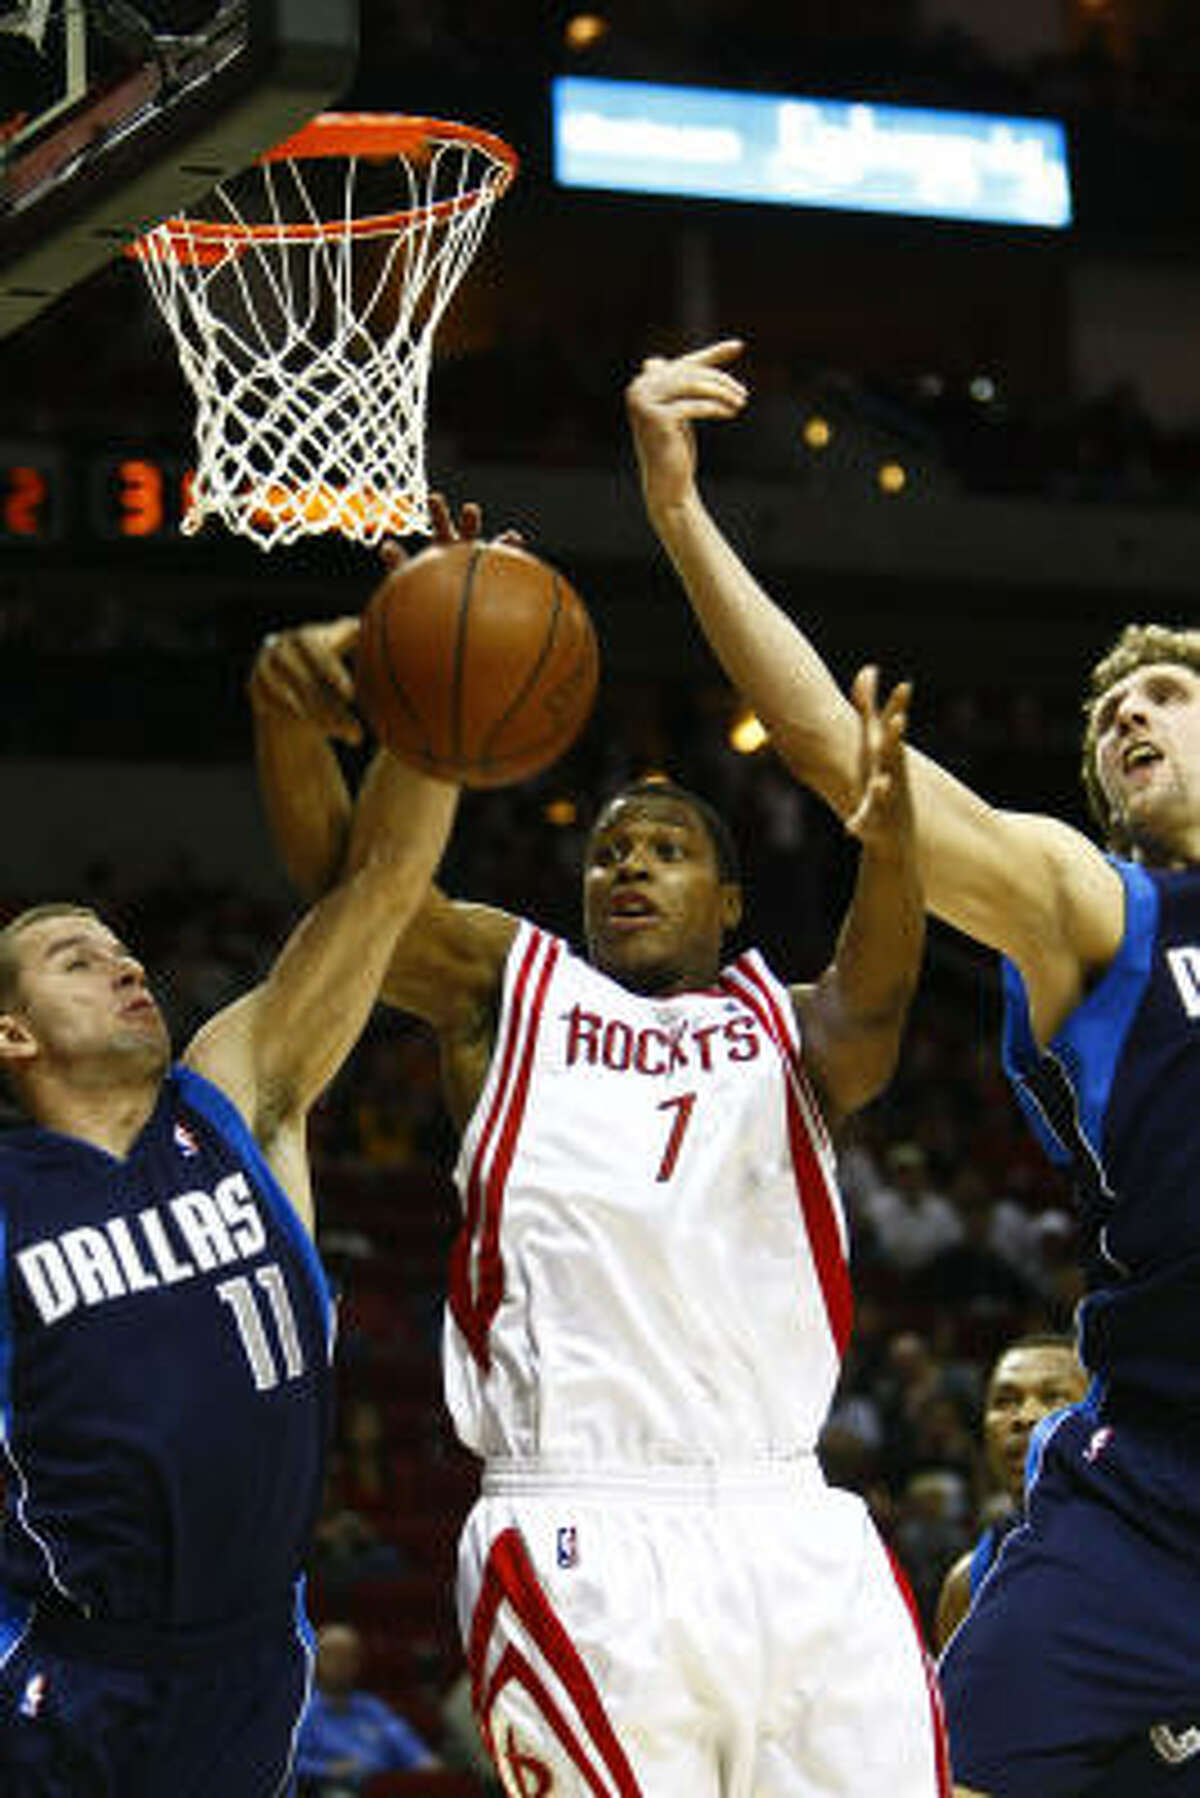 Kyle Lowry, center, tries to get control of a rebound as Dallas' Jose Juan Barea, left, and Dirk Nowitzki defend in the second quarter. Lowry played his first game in Houston since being traded from the Grizzlies in a three-team deal Thursday that included the Orlando Magic.